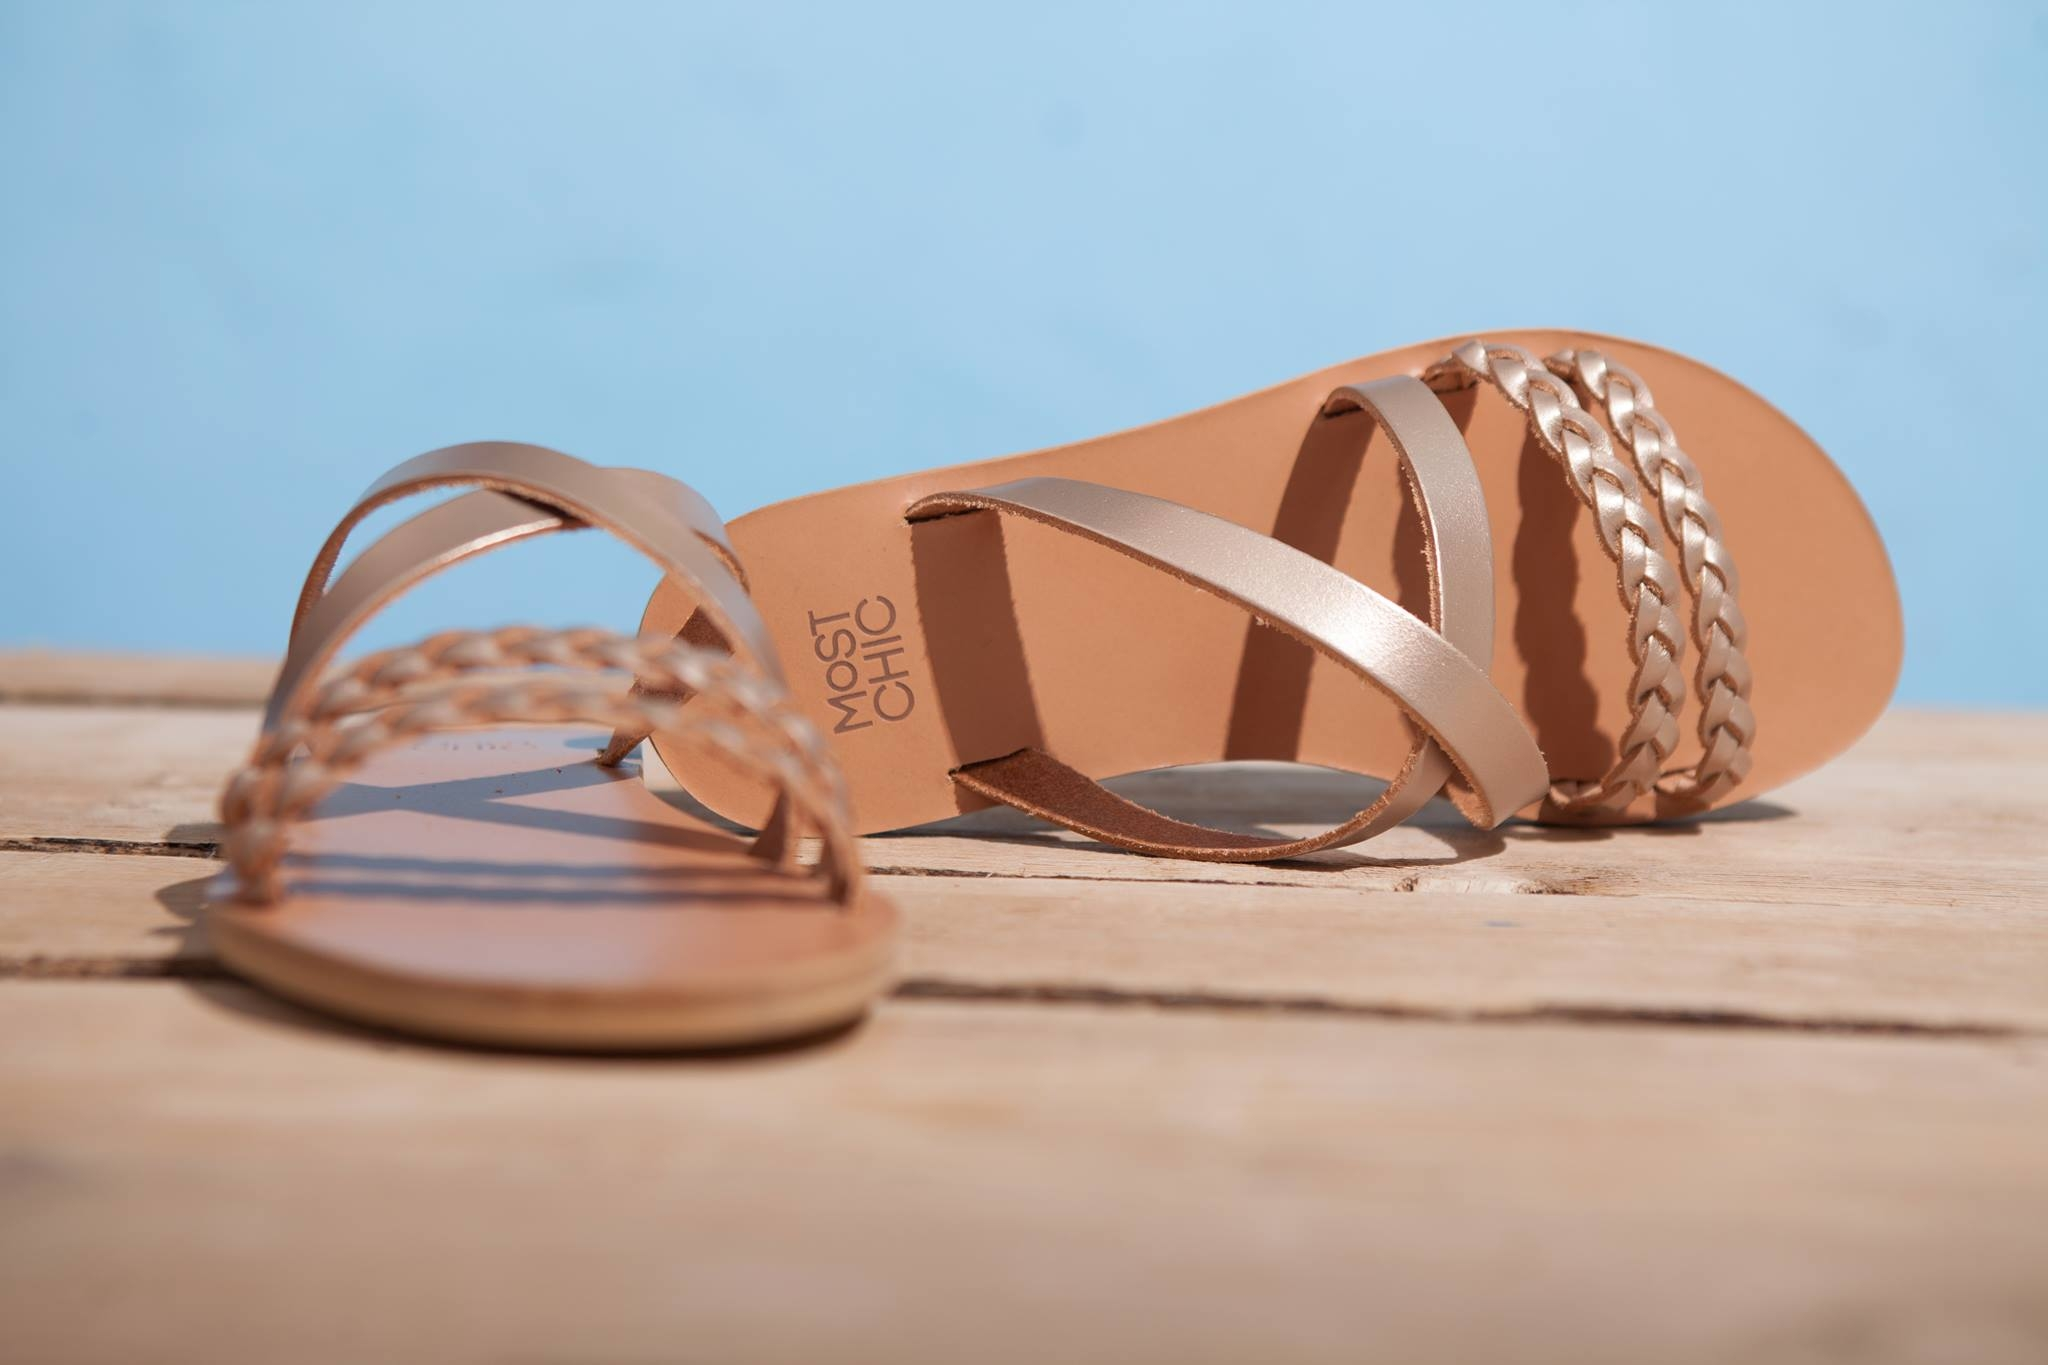 Most Chic Sandals.